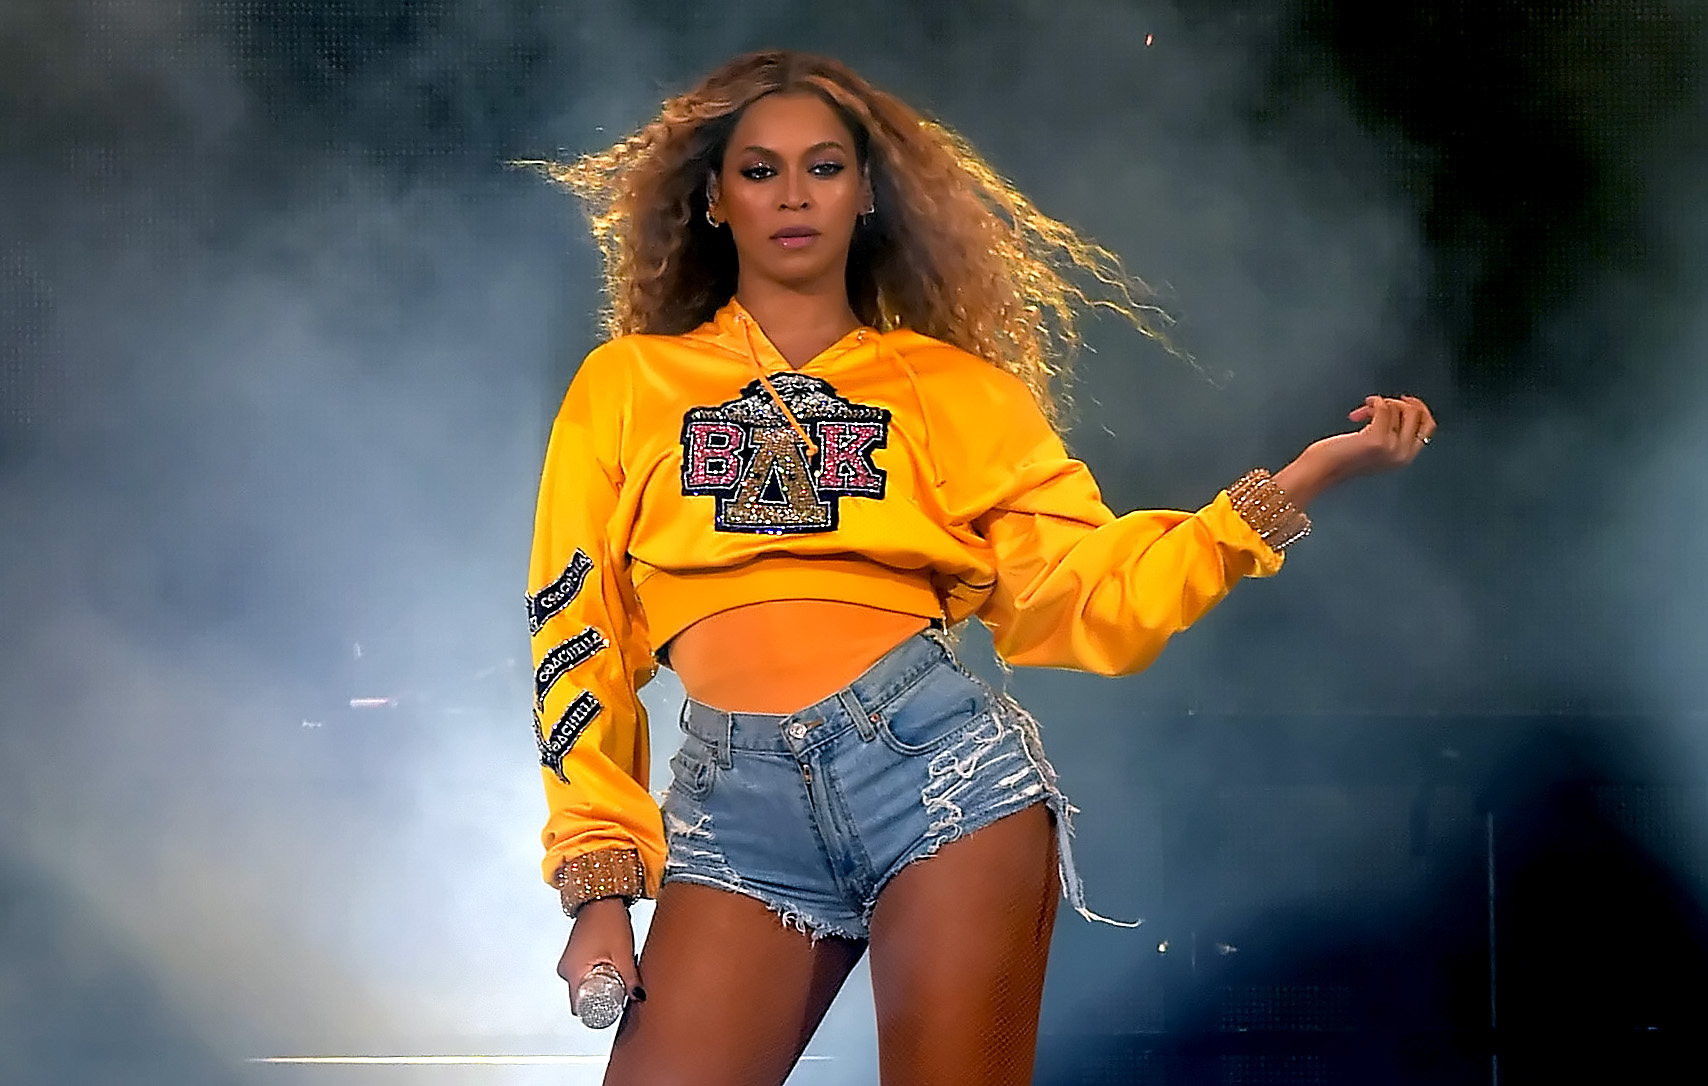 Beyonce Knowles performs onstage during 2018 Coachella Valley Music And Arts Festival Weekend 1 at the Empire Polo Field on April 14, 2018, in Indio, California. (Getty Images)